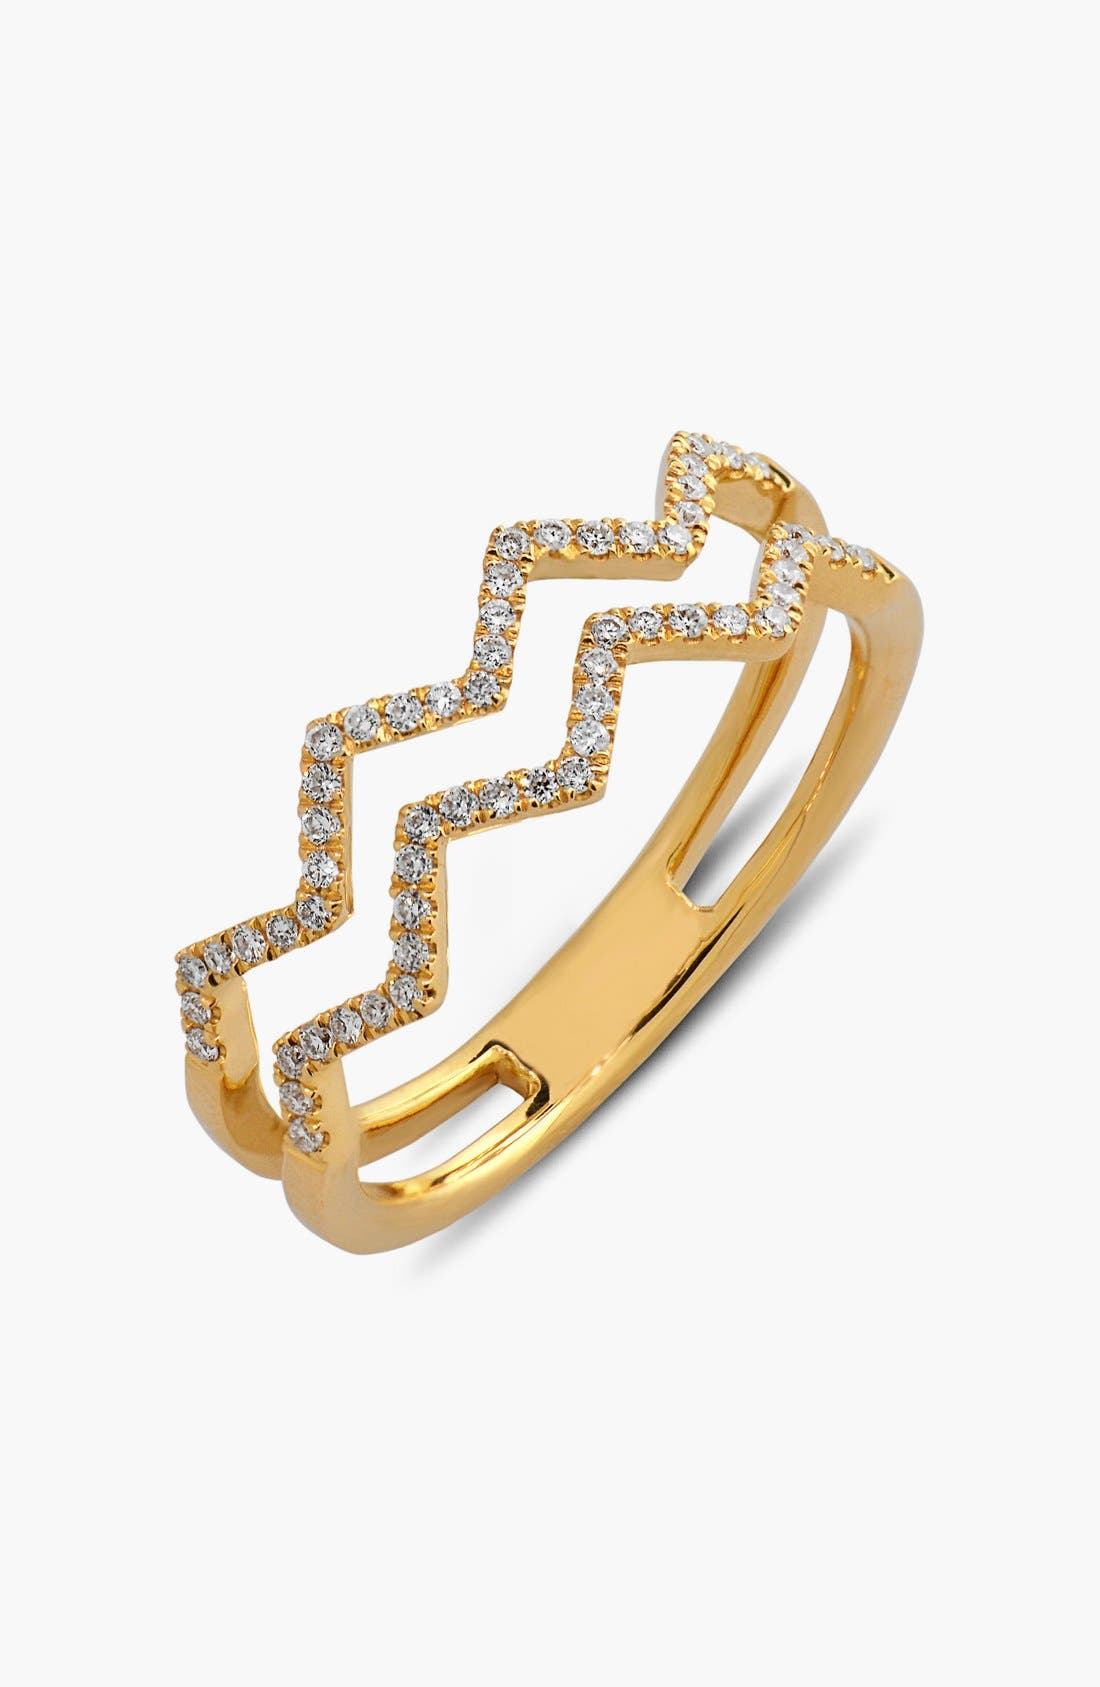 Alternate Image 1 Selected - Bony Levy 'Prism' 2-Row Diamond Ring (Limited Edition) (Nordstrom Exclusive)